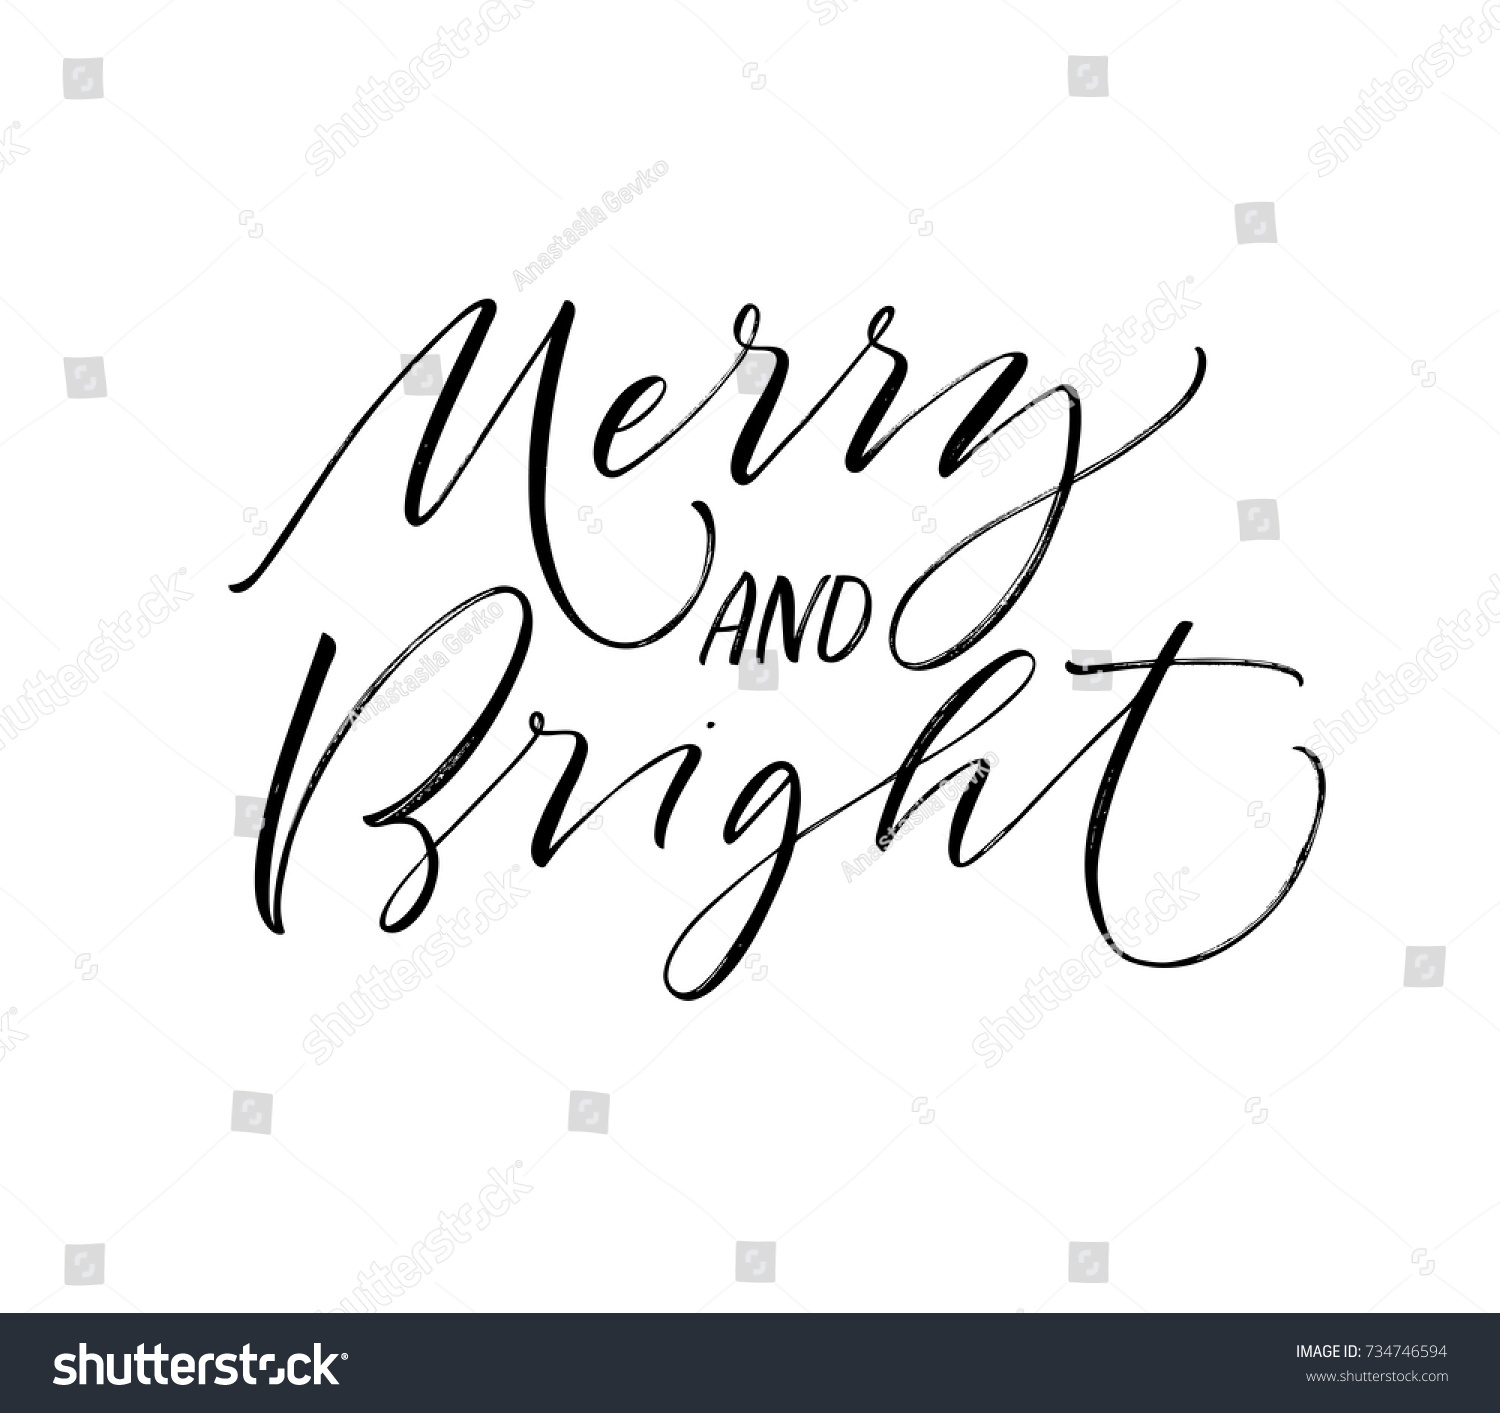 Merry bright phrase greeting card holiday stock vector 734746594 merry and bright phrase greeting card holiday lettering ink illustration modern brush kristyandbryce Choice Image